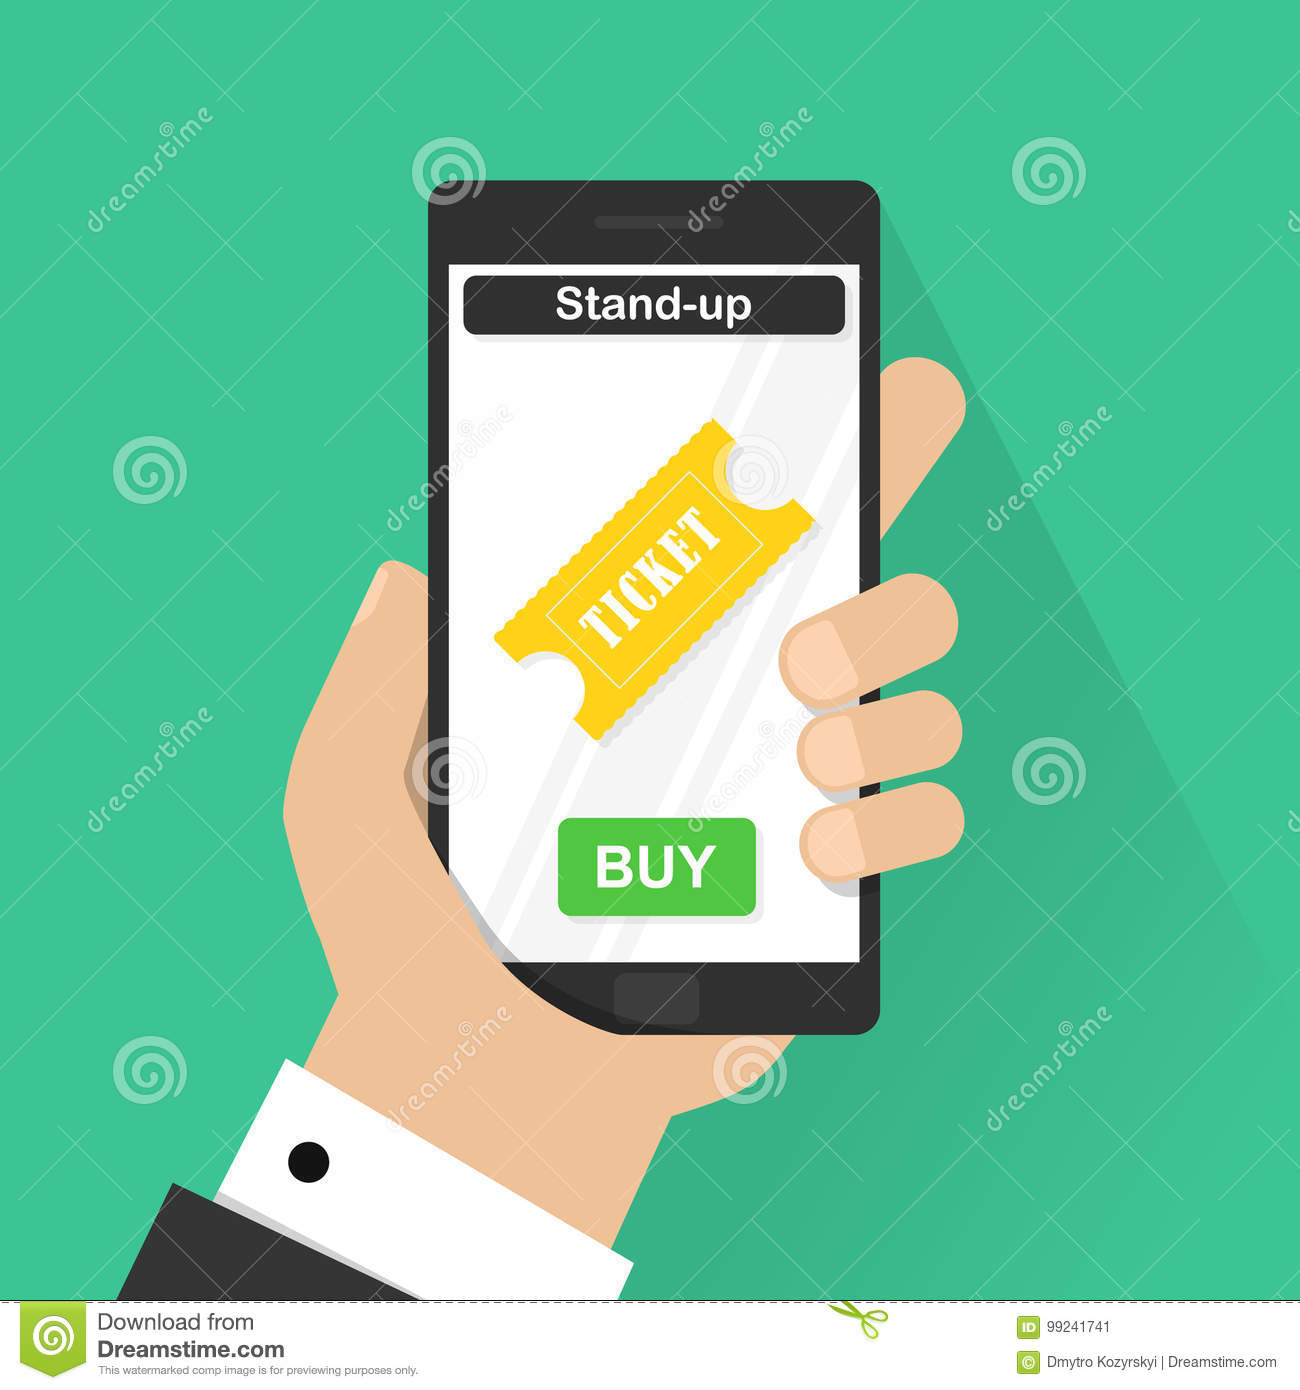 flat design vector illustration concepts of online stand up ticket